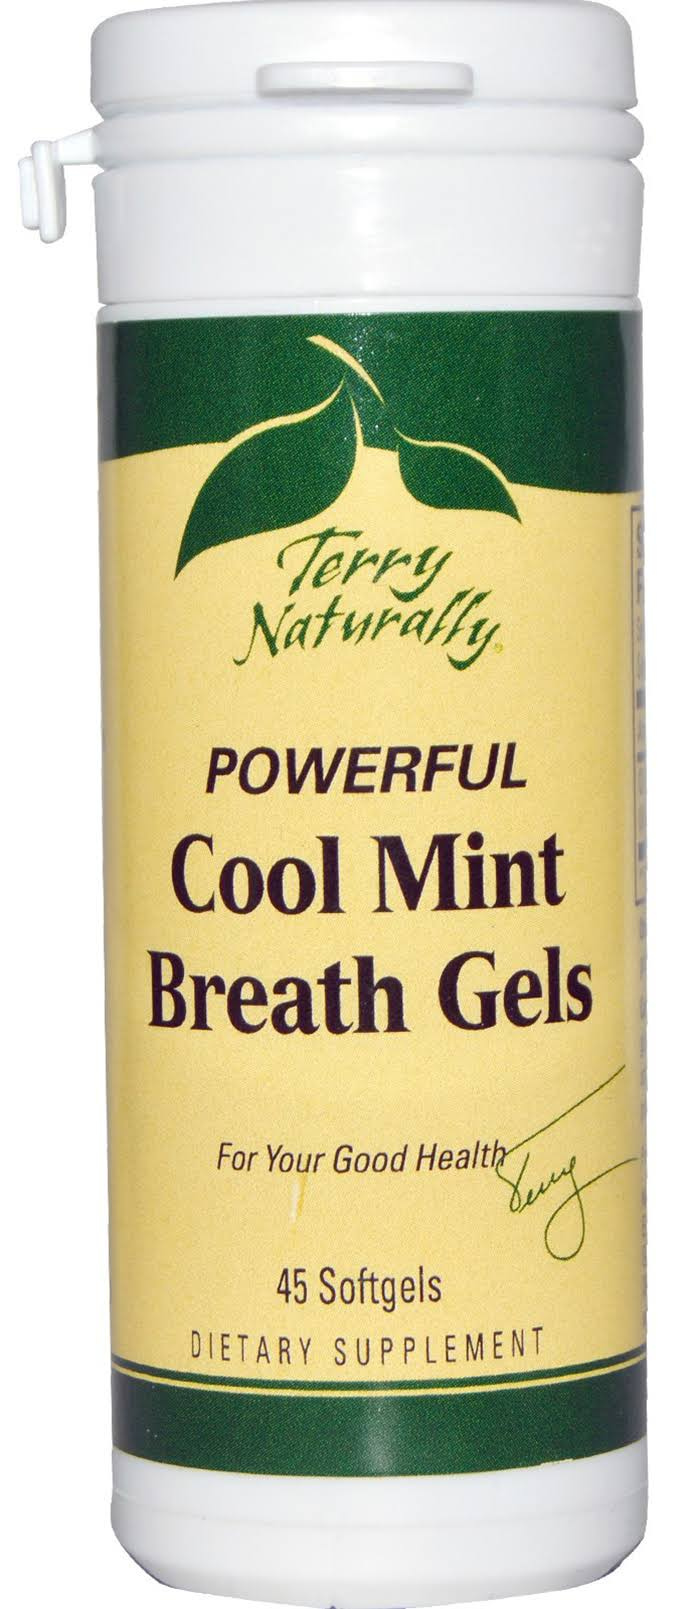 EuroPharma Terry Naturally Powerful Cool Mint Breath Gels